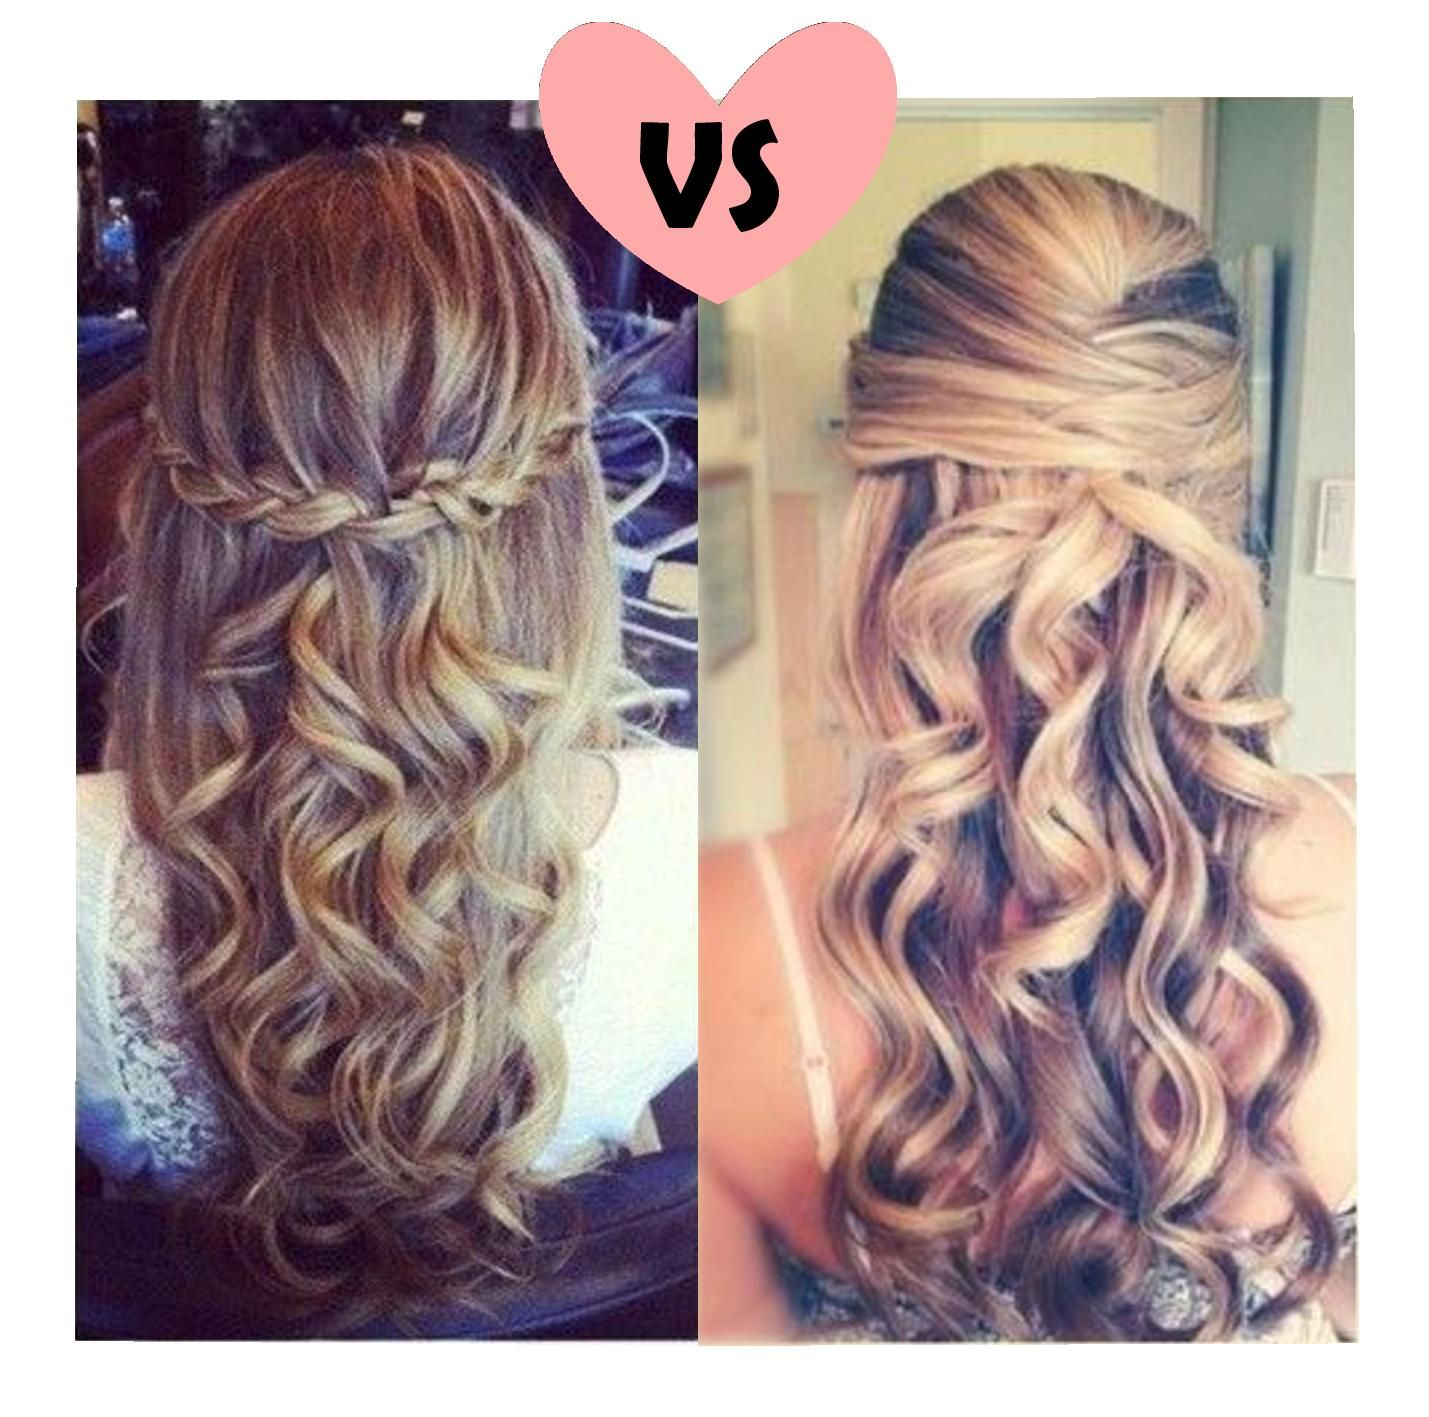 I really like the right hairstyle it would be cute for prom